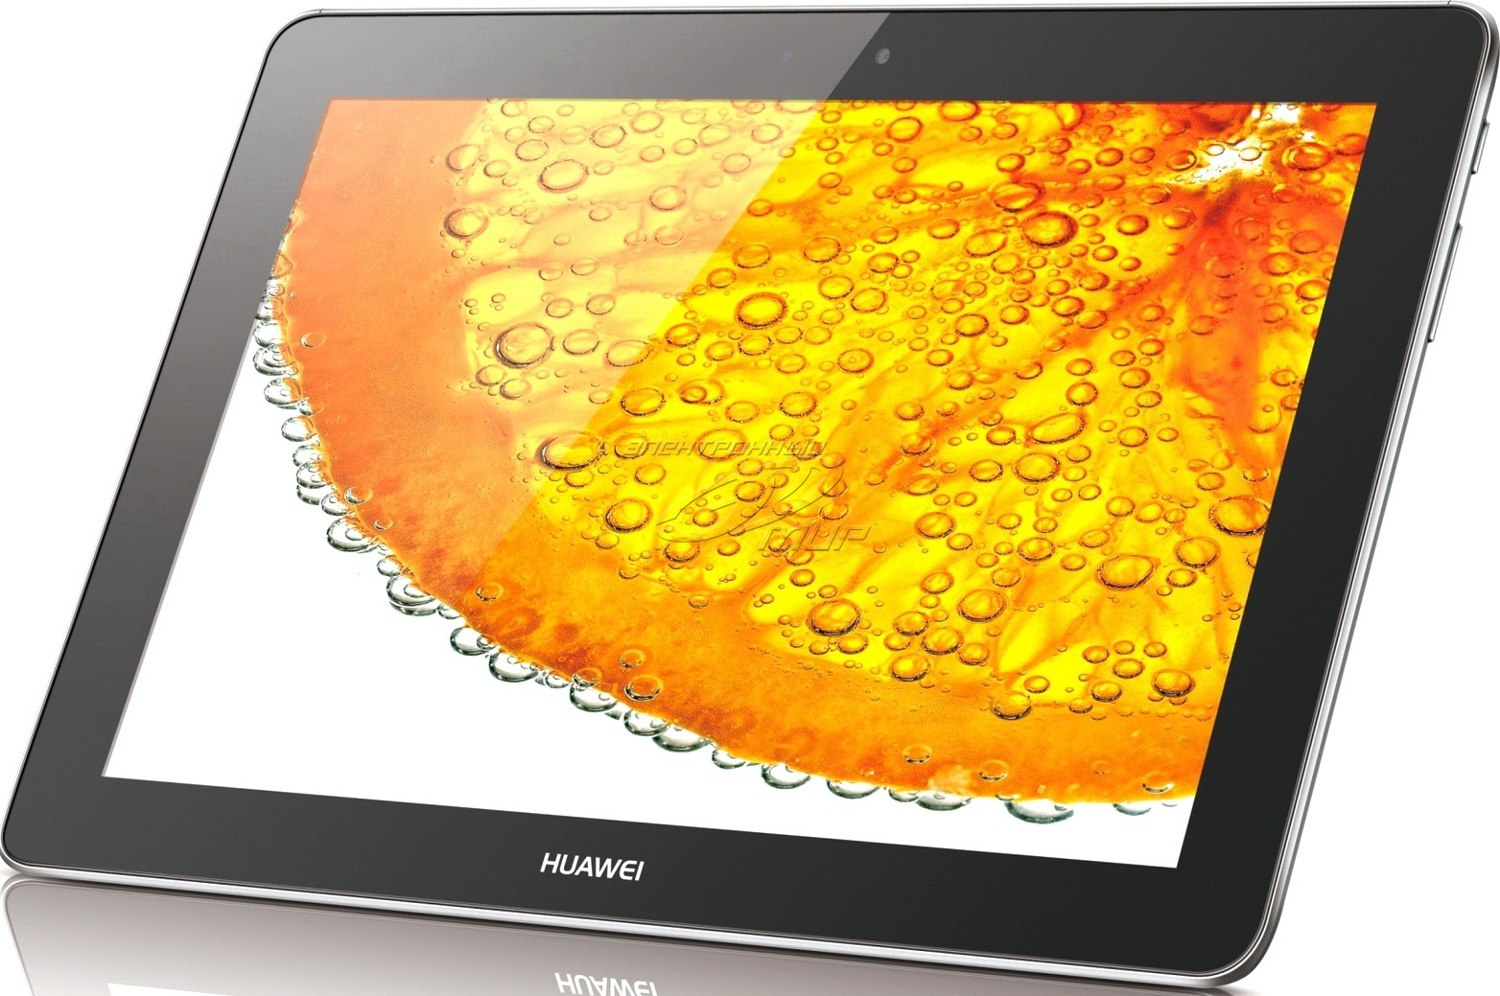 How to Root the Huawei Mediapad 10 Link